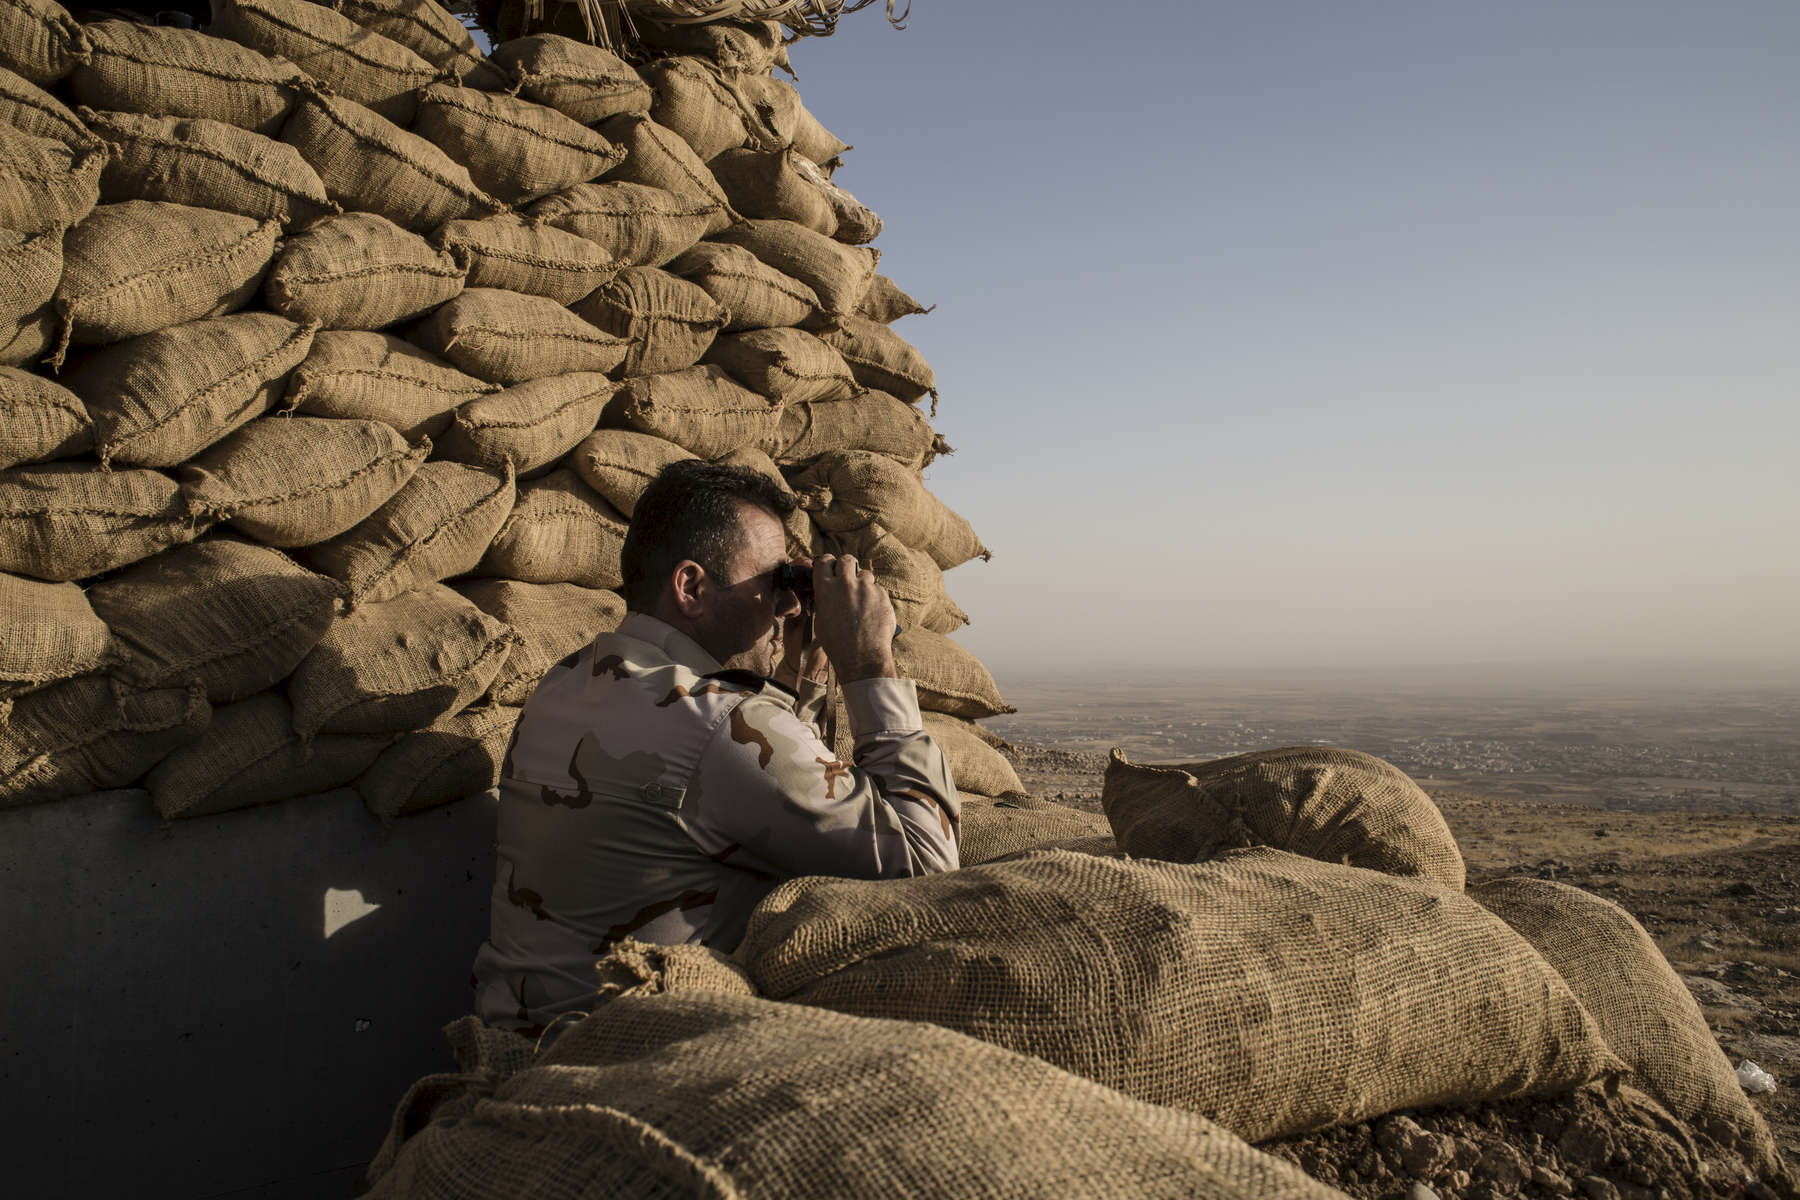 01/09/2016 -- Bashika, Iraq -- A Peshmerga fighter have occupied static positions overlooking the town of Bashiqa for over two years.